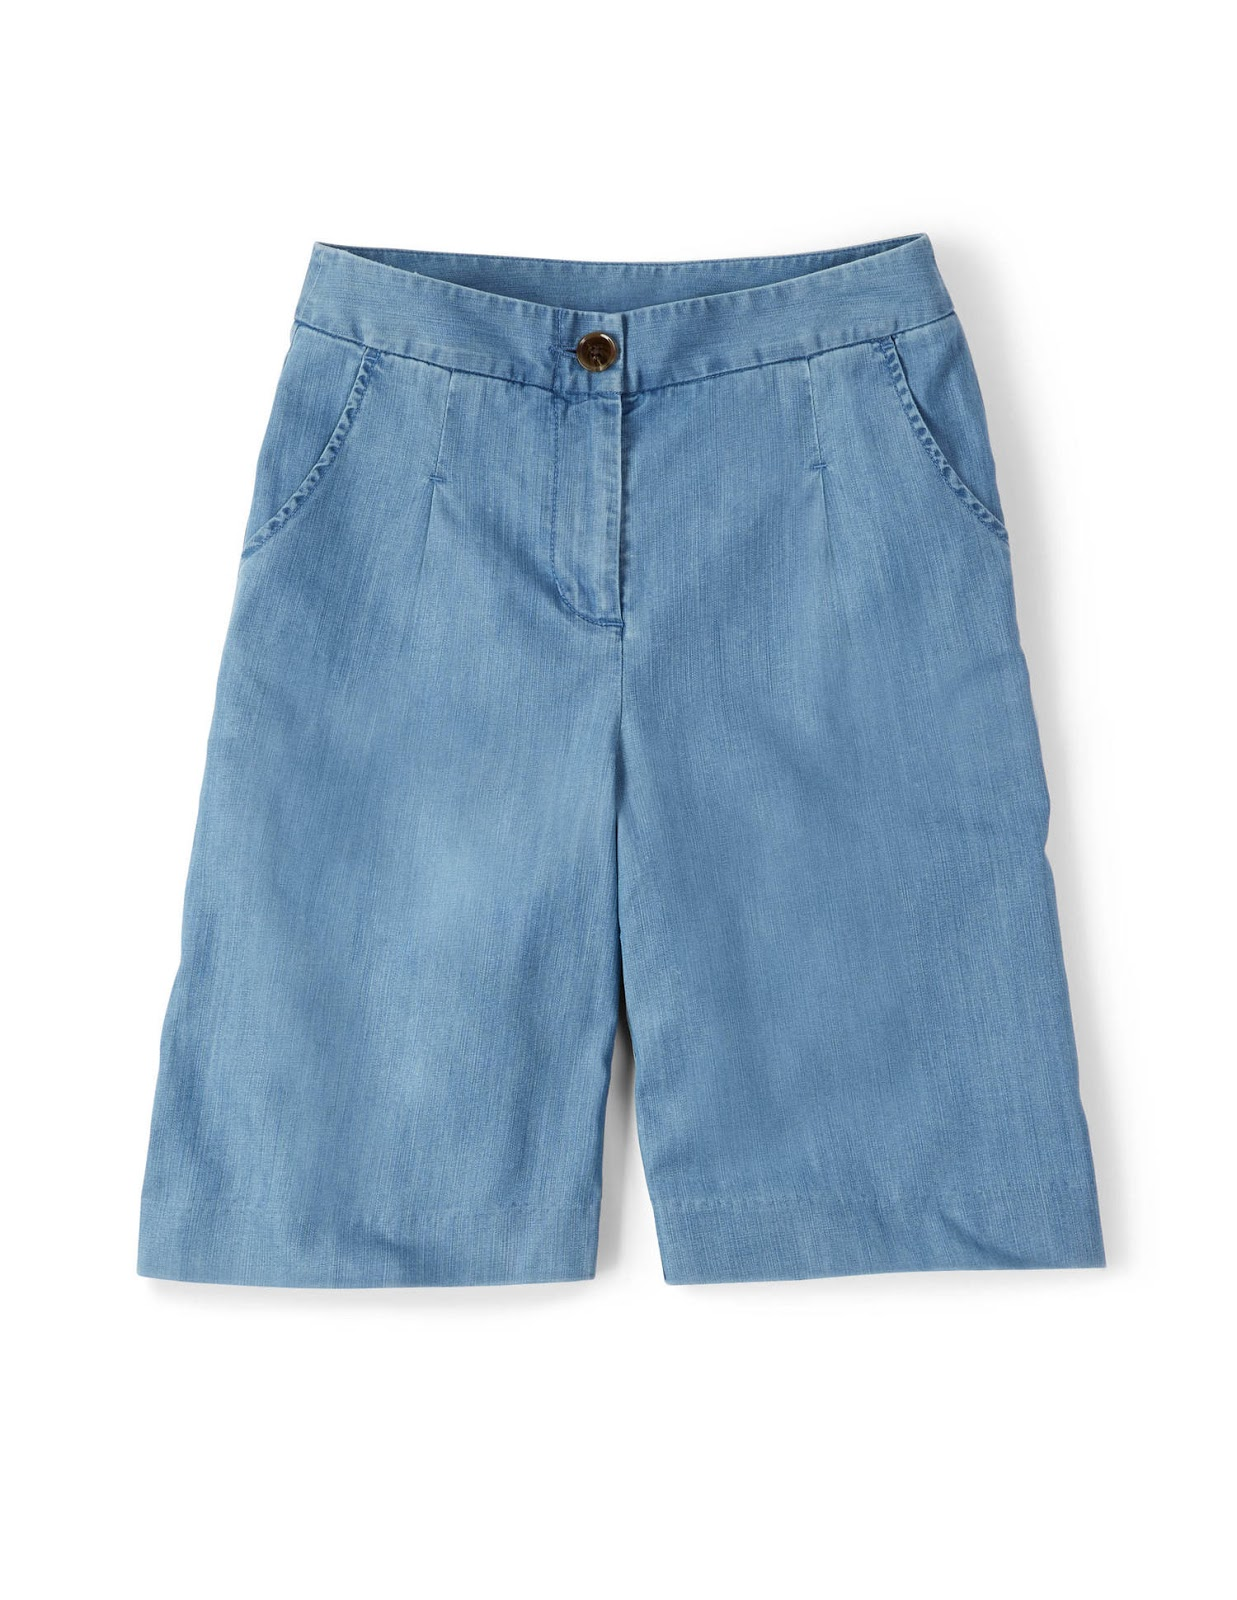 b1ca7f0a29 My Superfluities  Boden  The Curious Case of the Culotte.